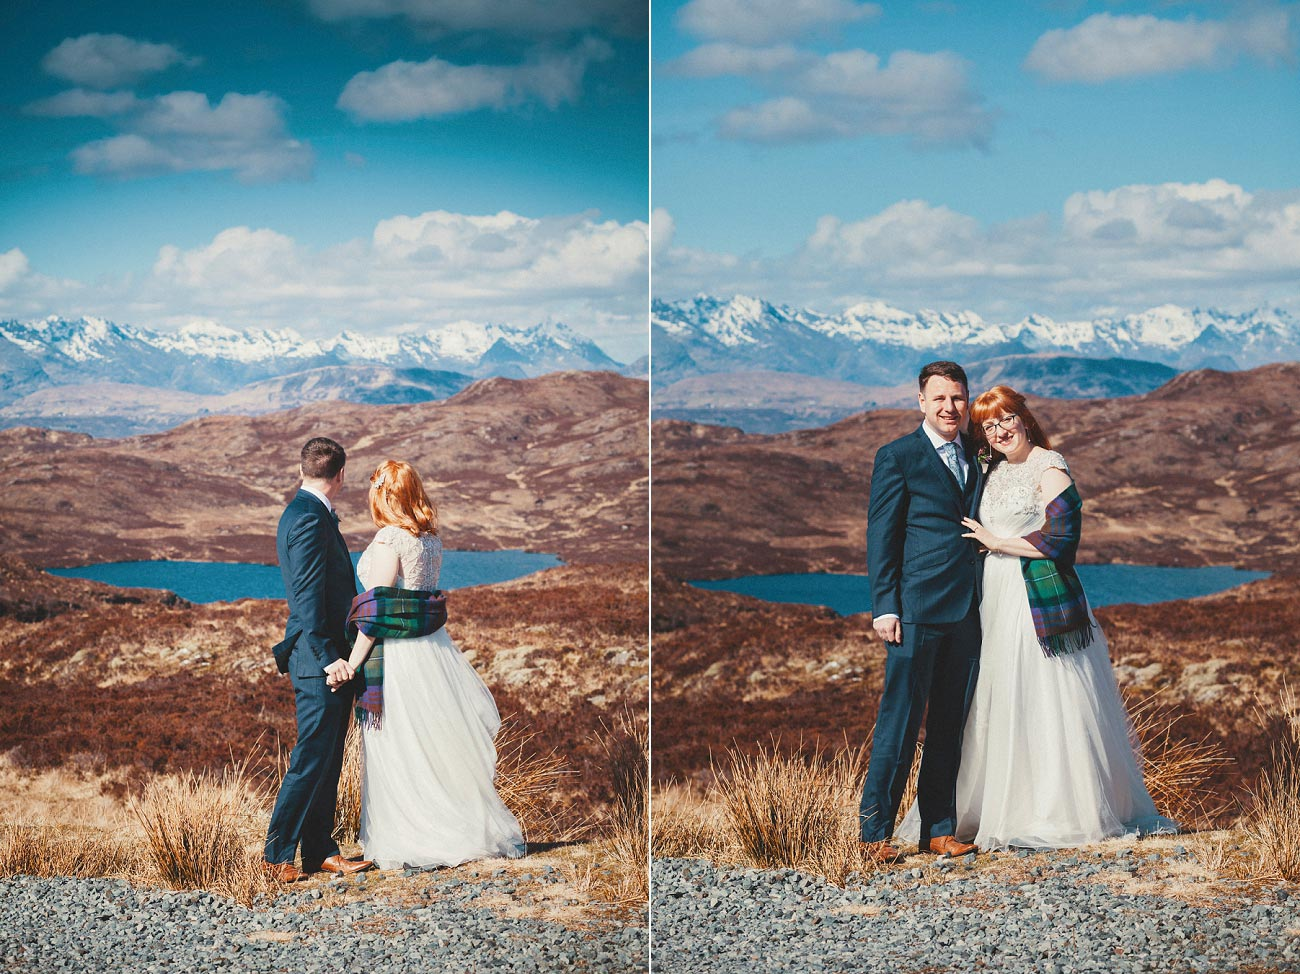 isle of skye elopement wedding photographer scotland dunscaith castle rj 0007